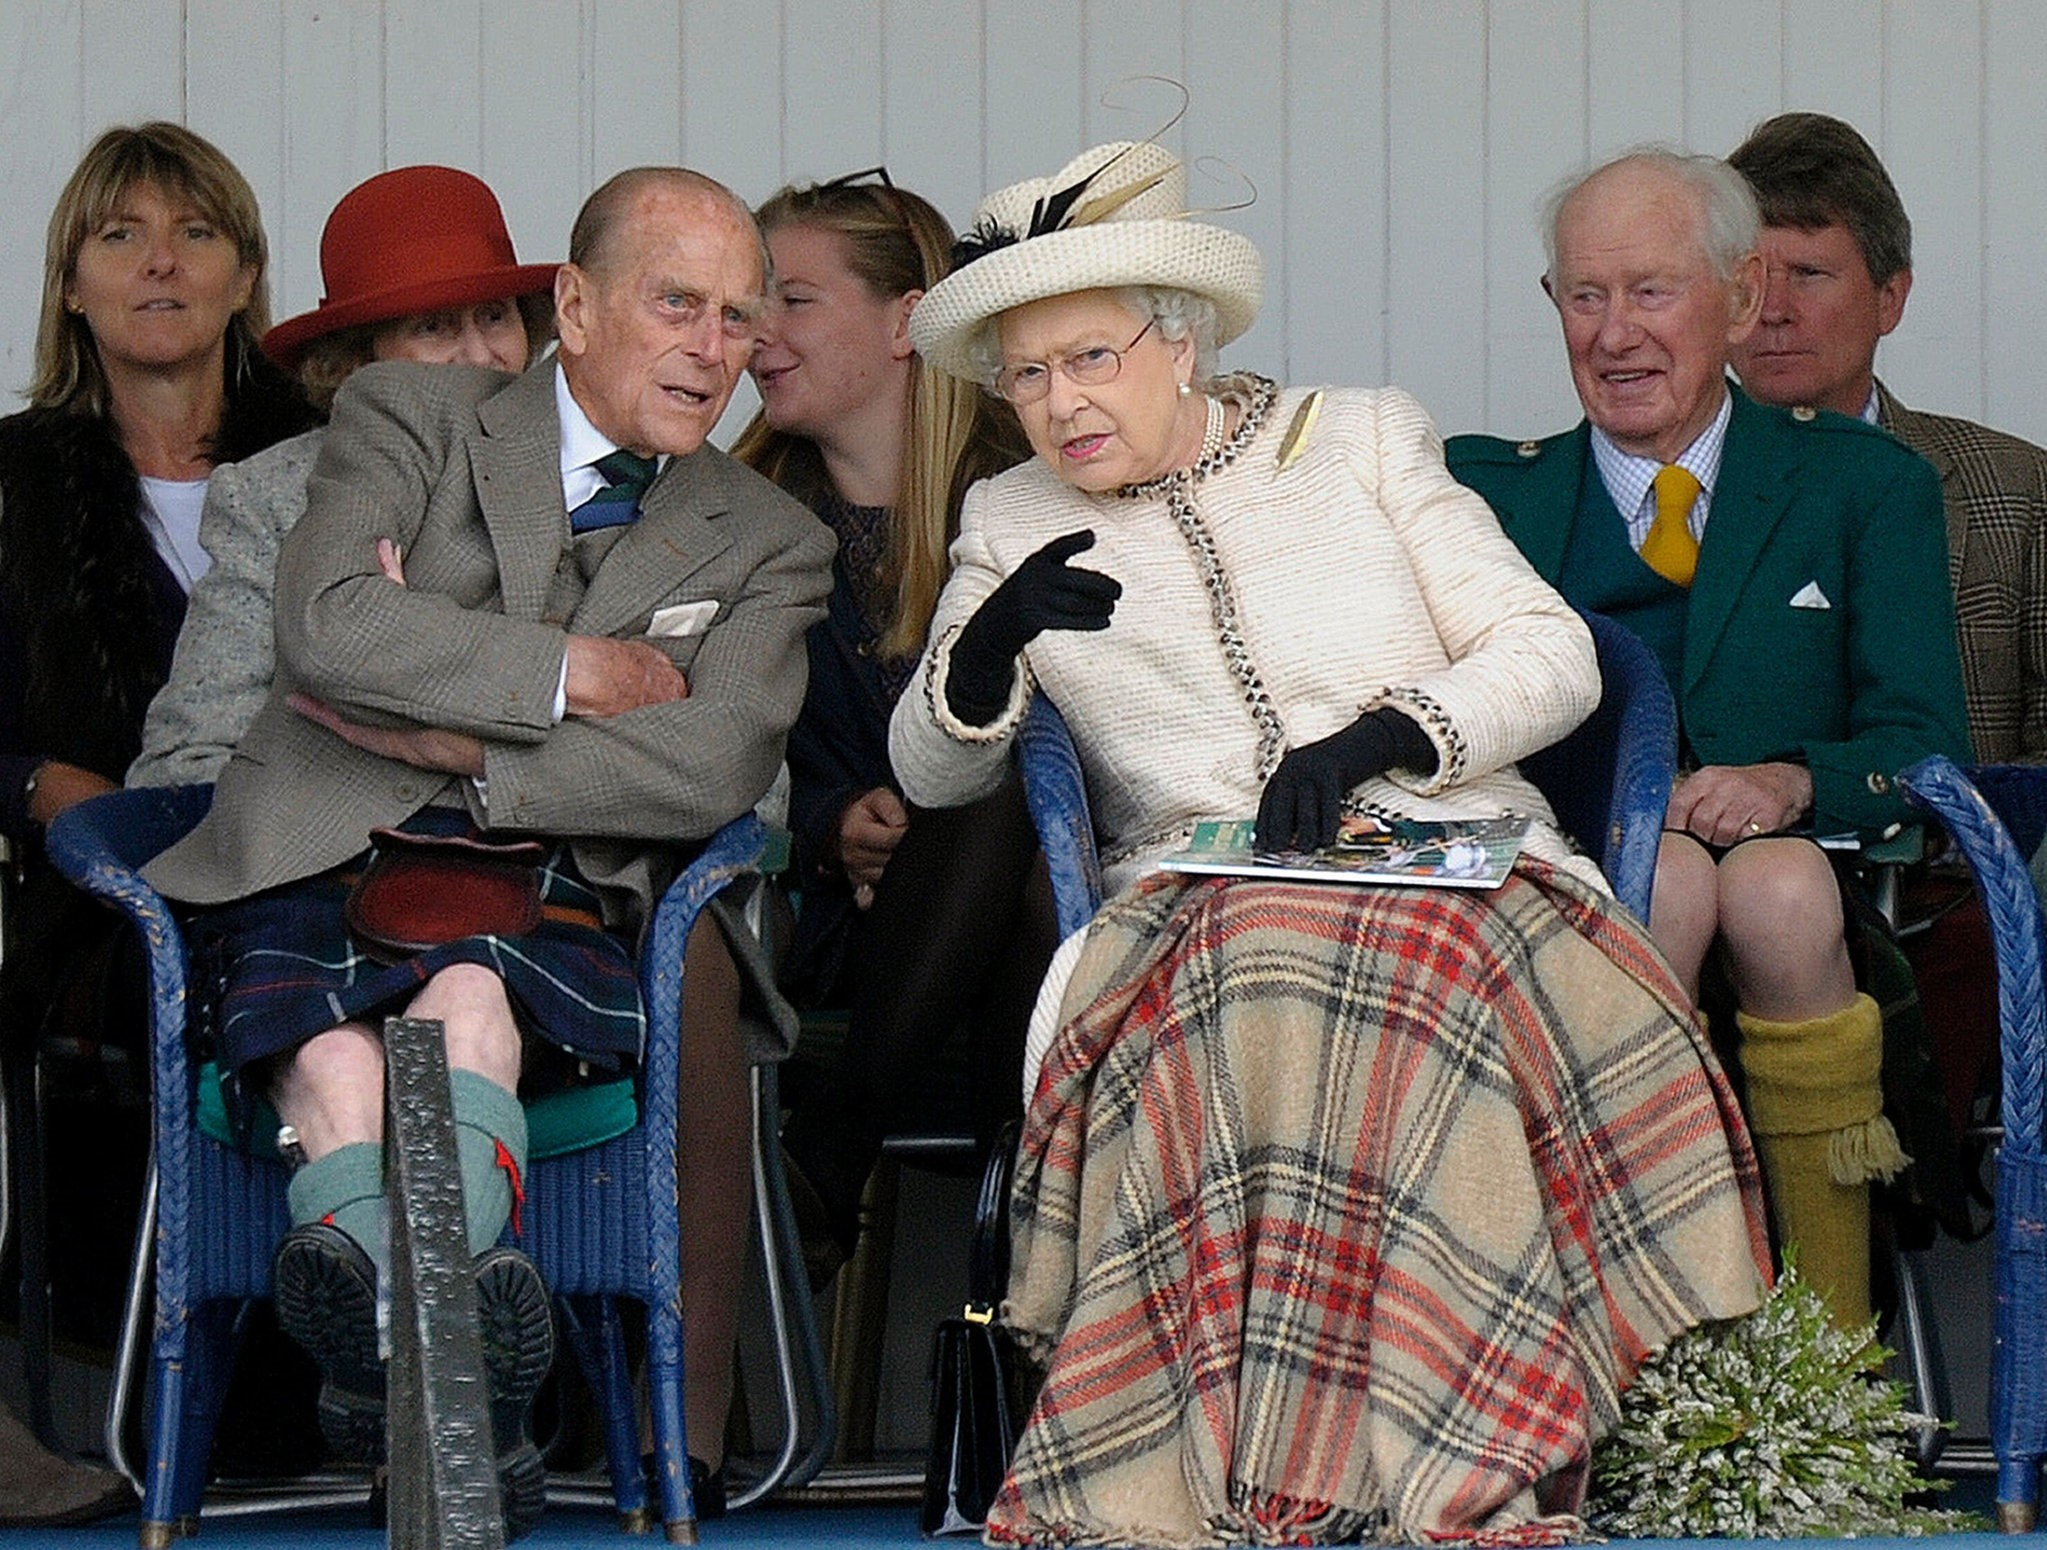 This file photo taken on September 06, 2014 shows Britain's Queen Elizabeth II and her husband Prince Philip (L) attending the Braemar Gathering in Braemar, central Scotland. (AFP Photo)